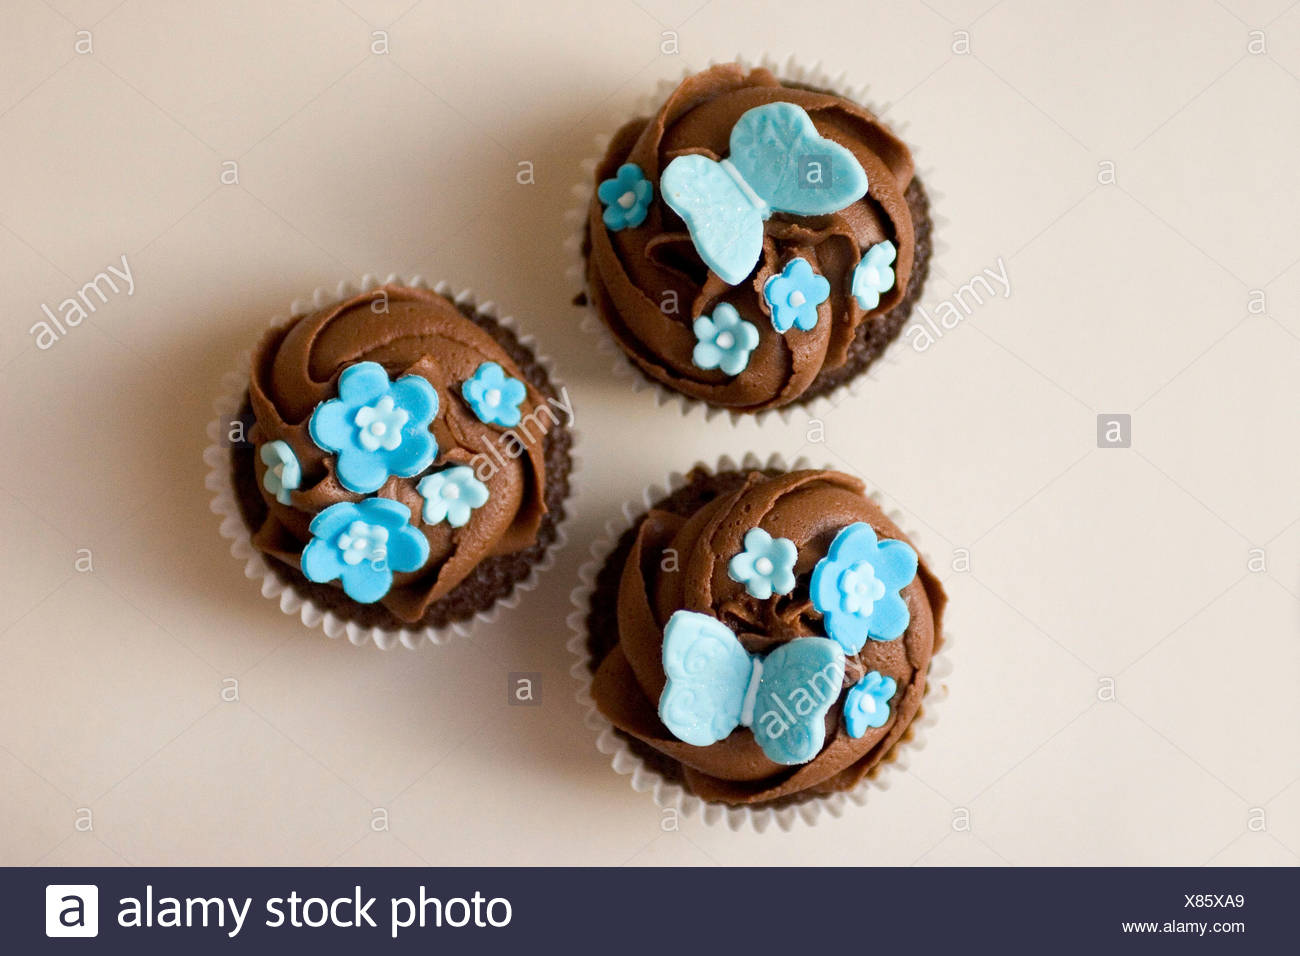 Cupcakes Butterfly Decorations Stock Photos Cupcakes Butterfly